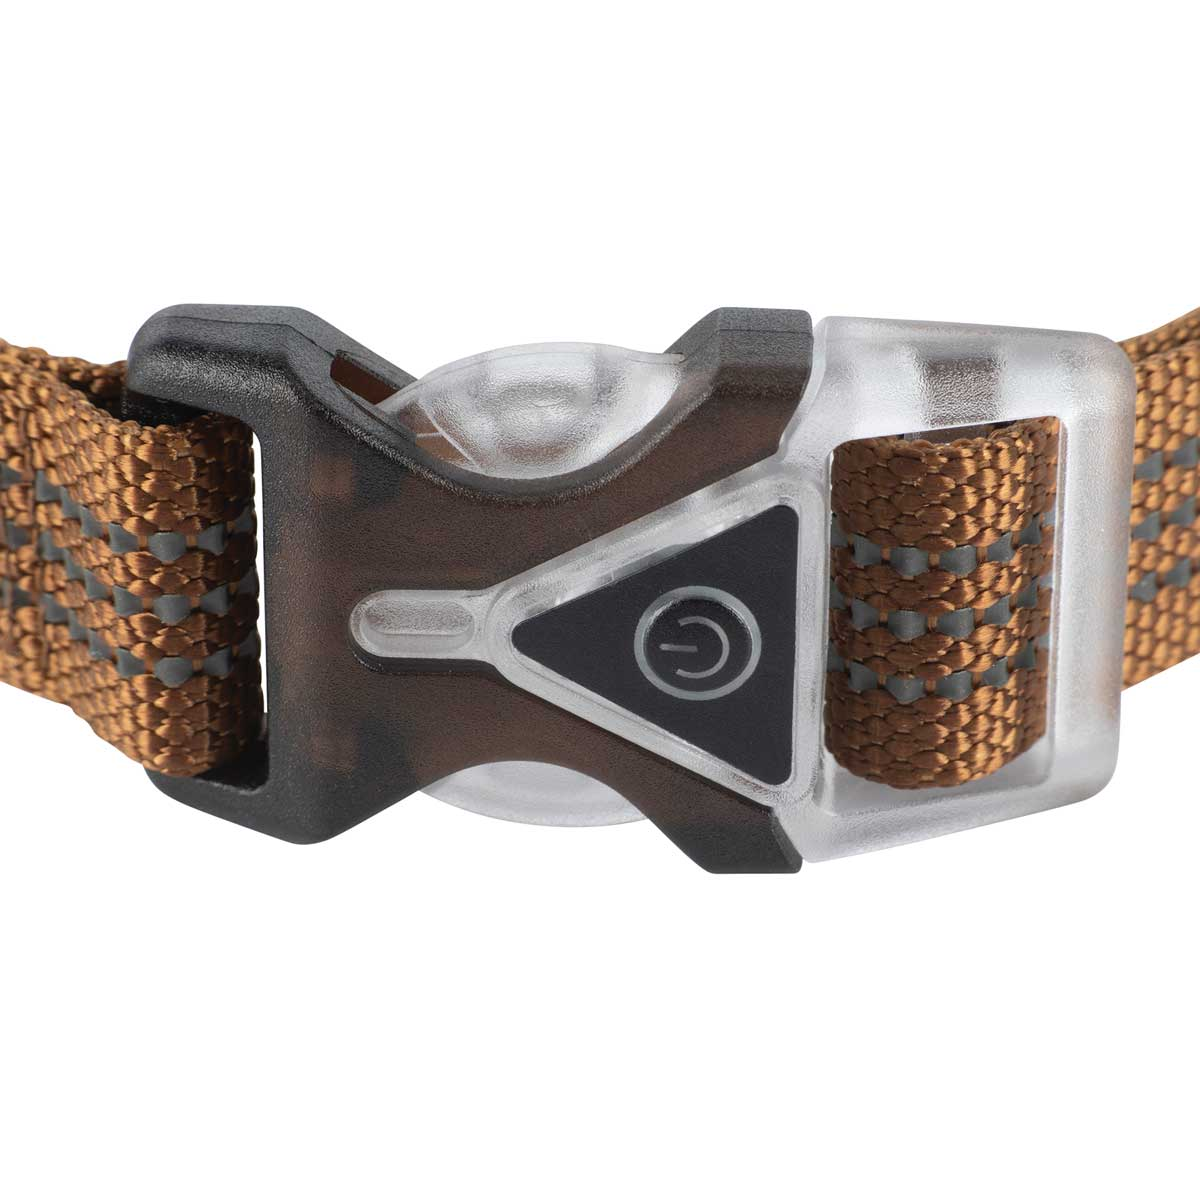 Carhartt Lighted Dog Collar